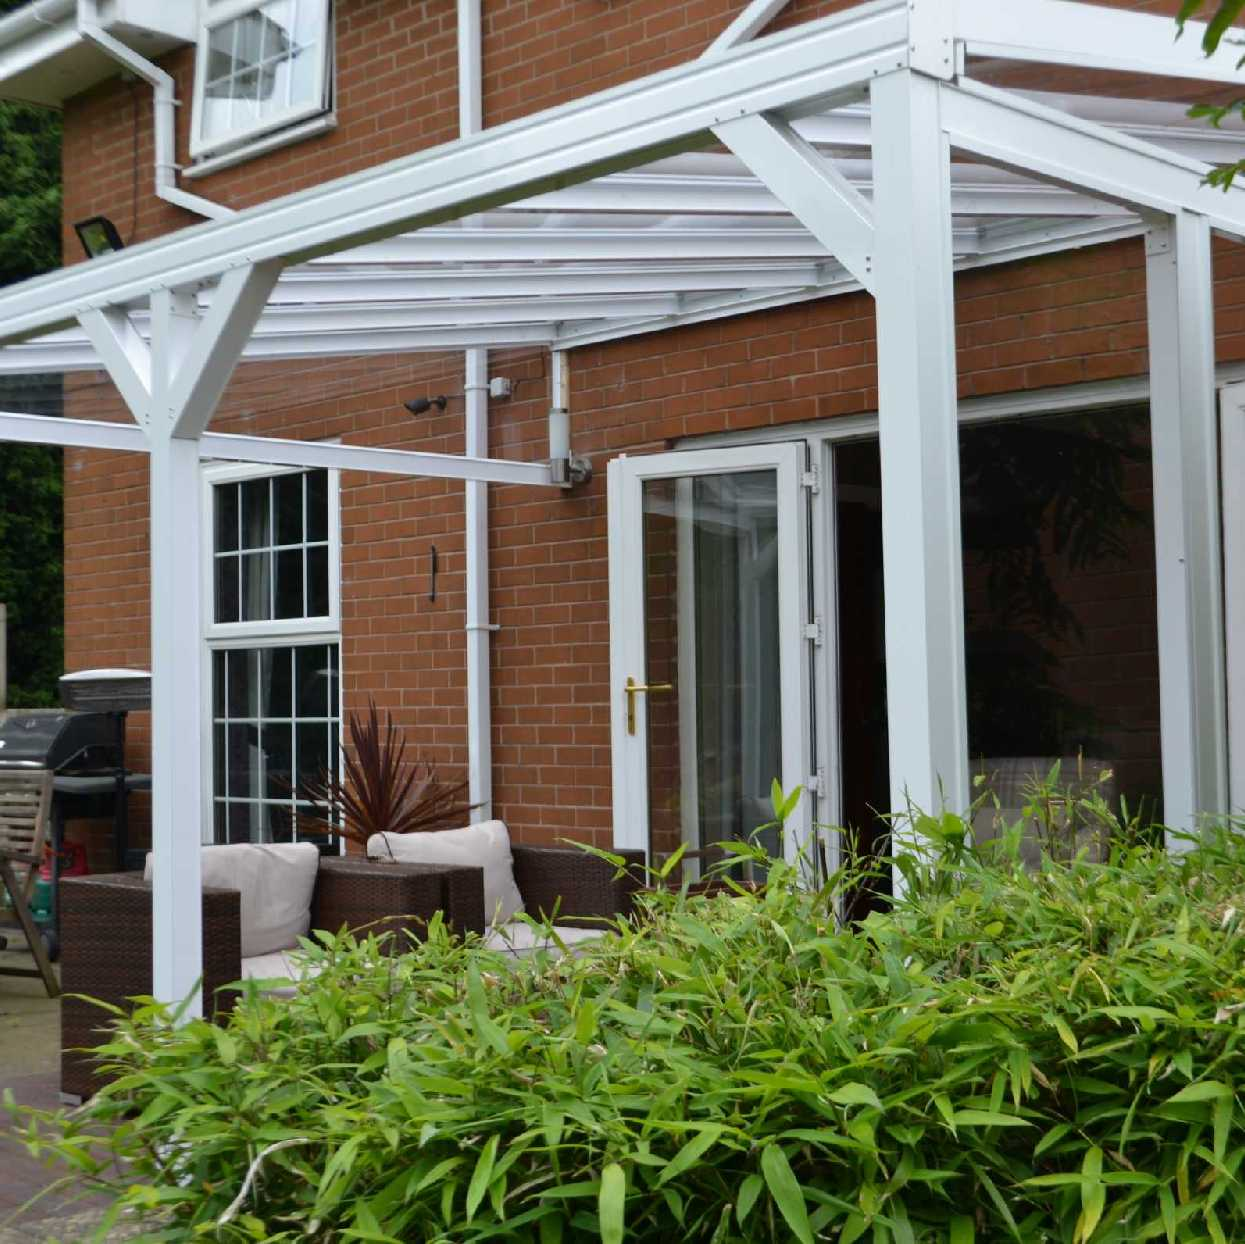 Omega Smart Lean-To Canopy with 6mm Glass Clear Plate Polycarbonate Glazing - 9.1m (W) x 3.0m (P), (5) Supporting Posts from Omega Build